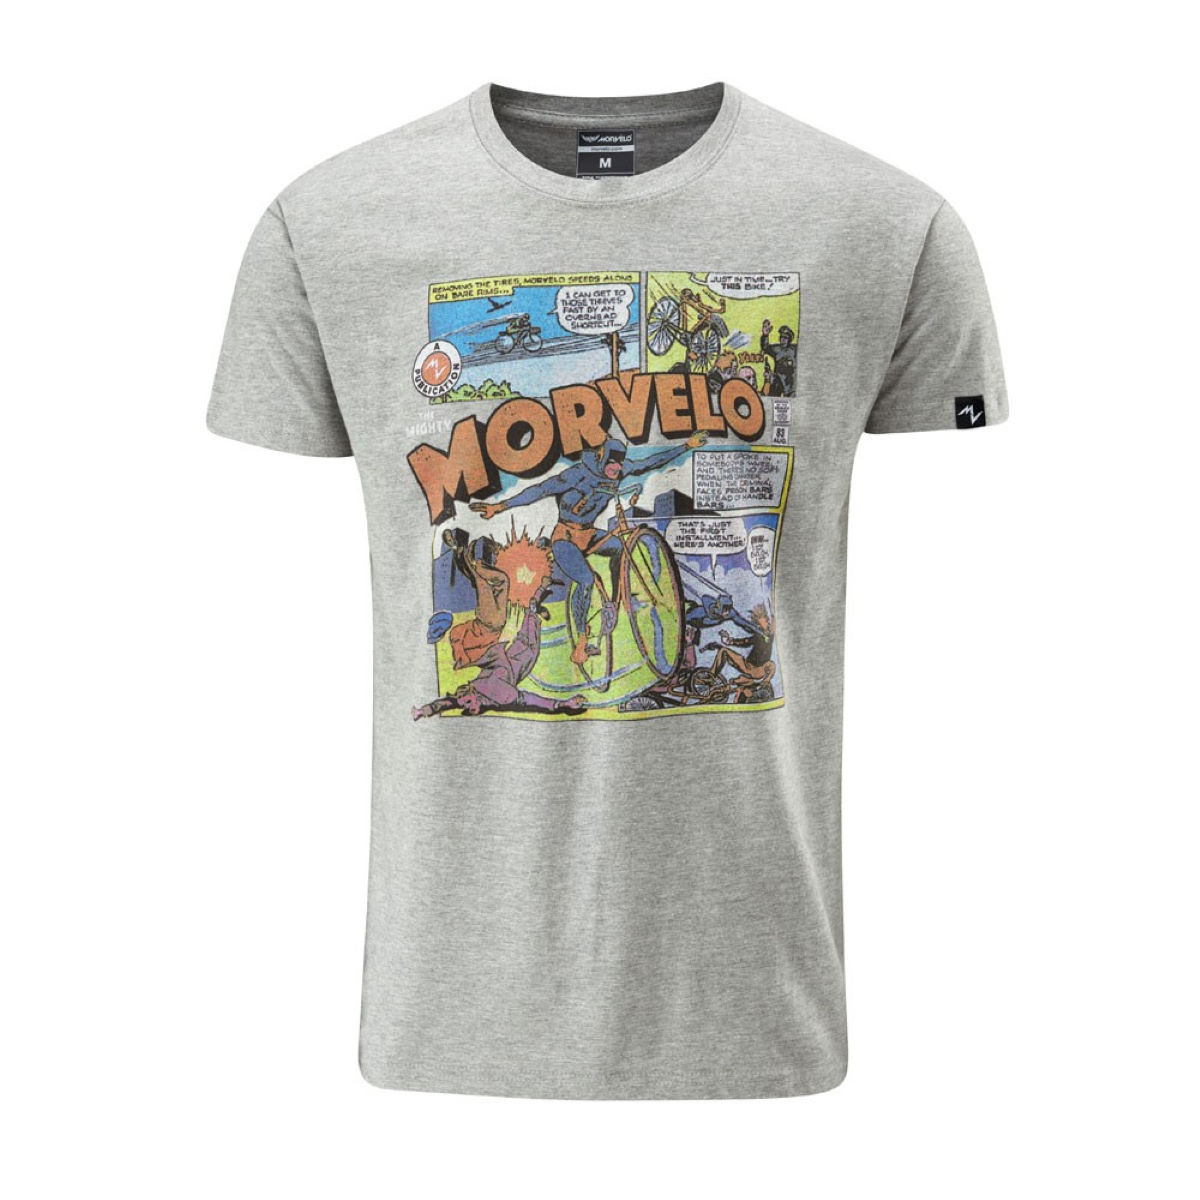 Morvelo mighty t shirt review for T shirt company reviews